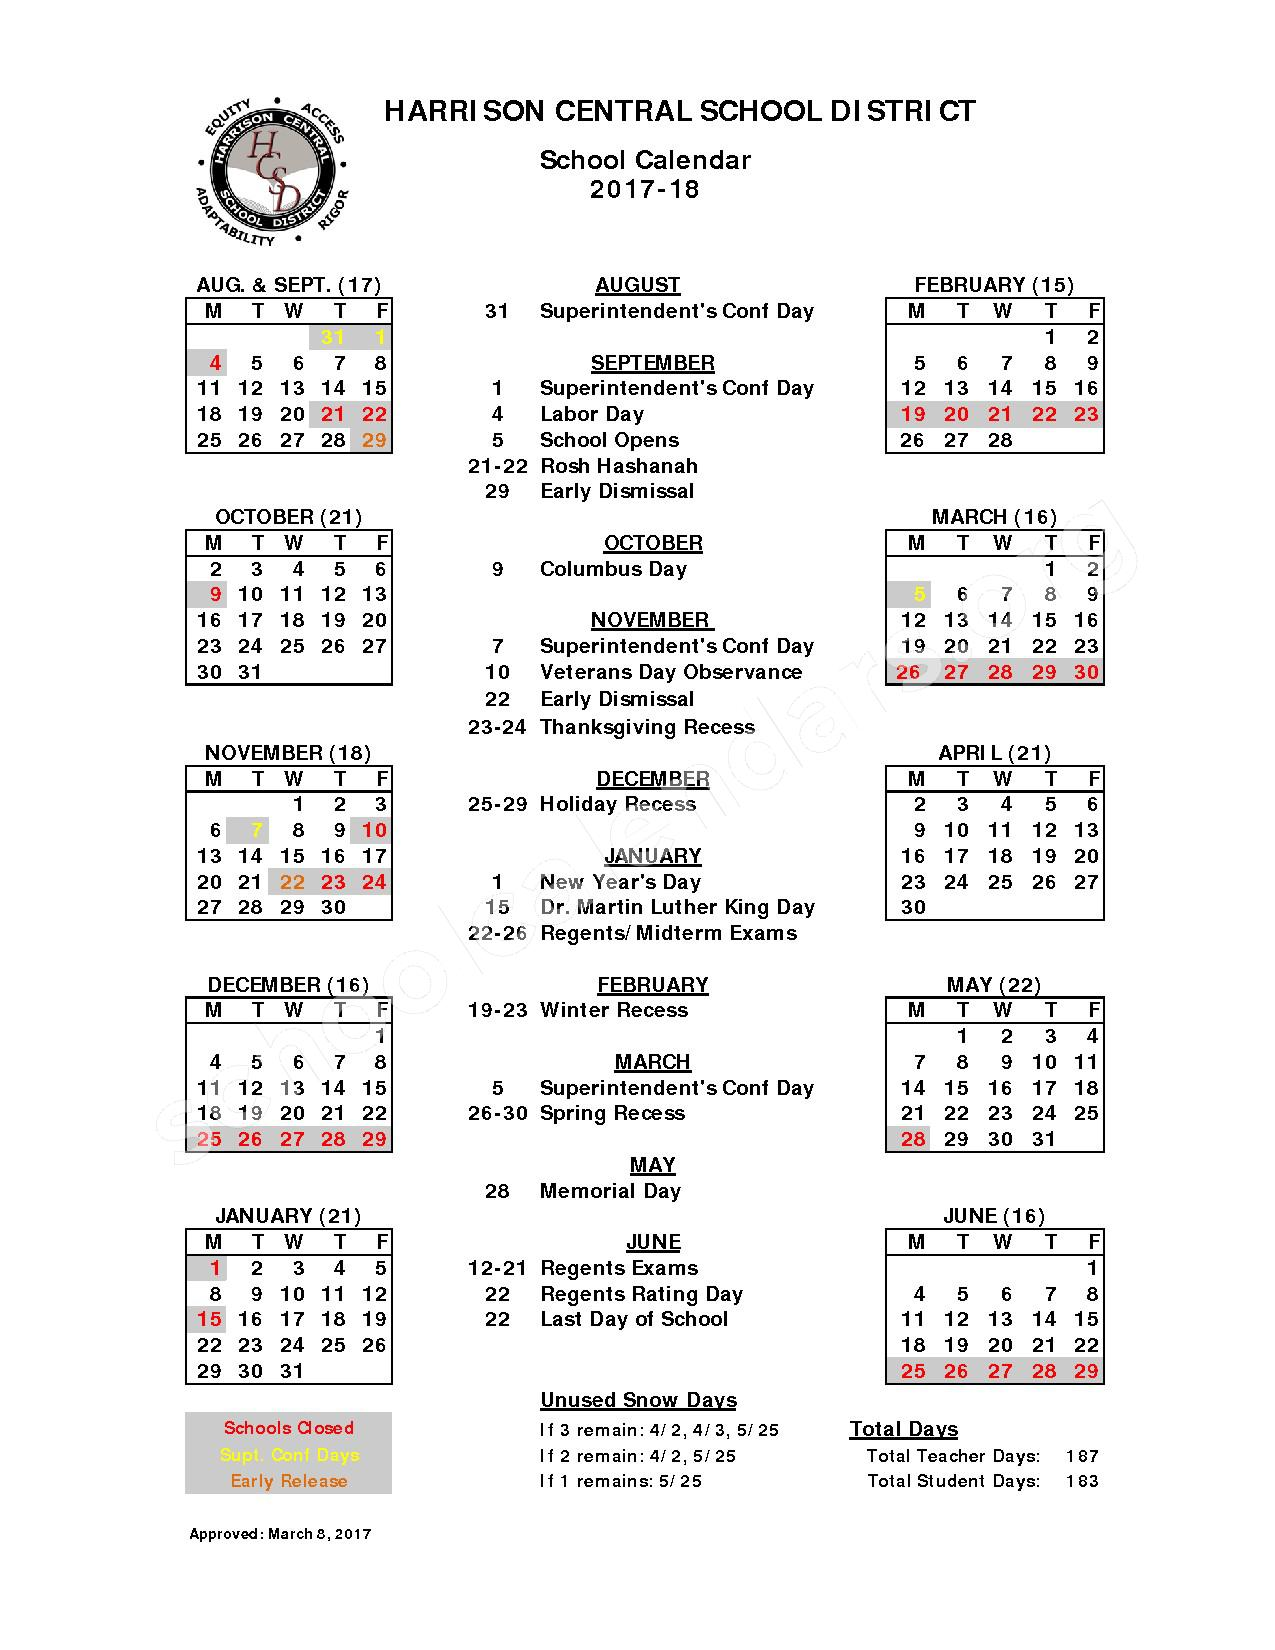 2017 - 2018 School Calendar – Purchase School – page 1